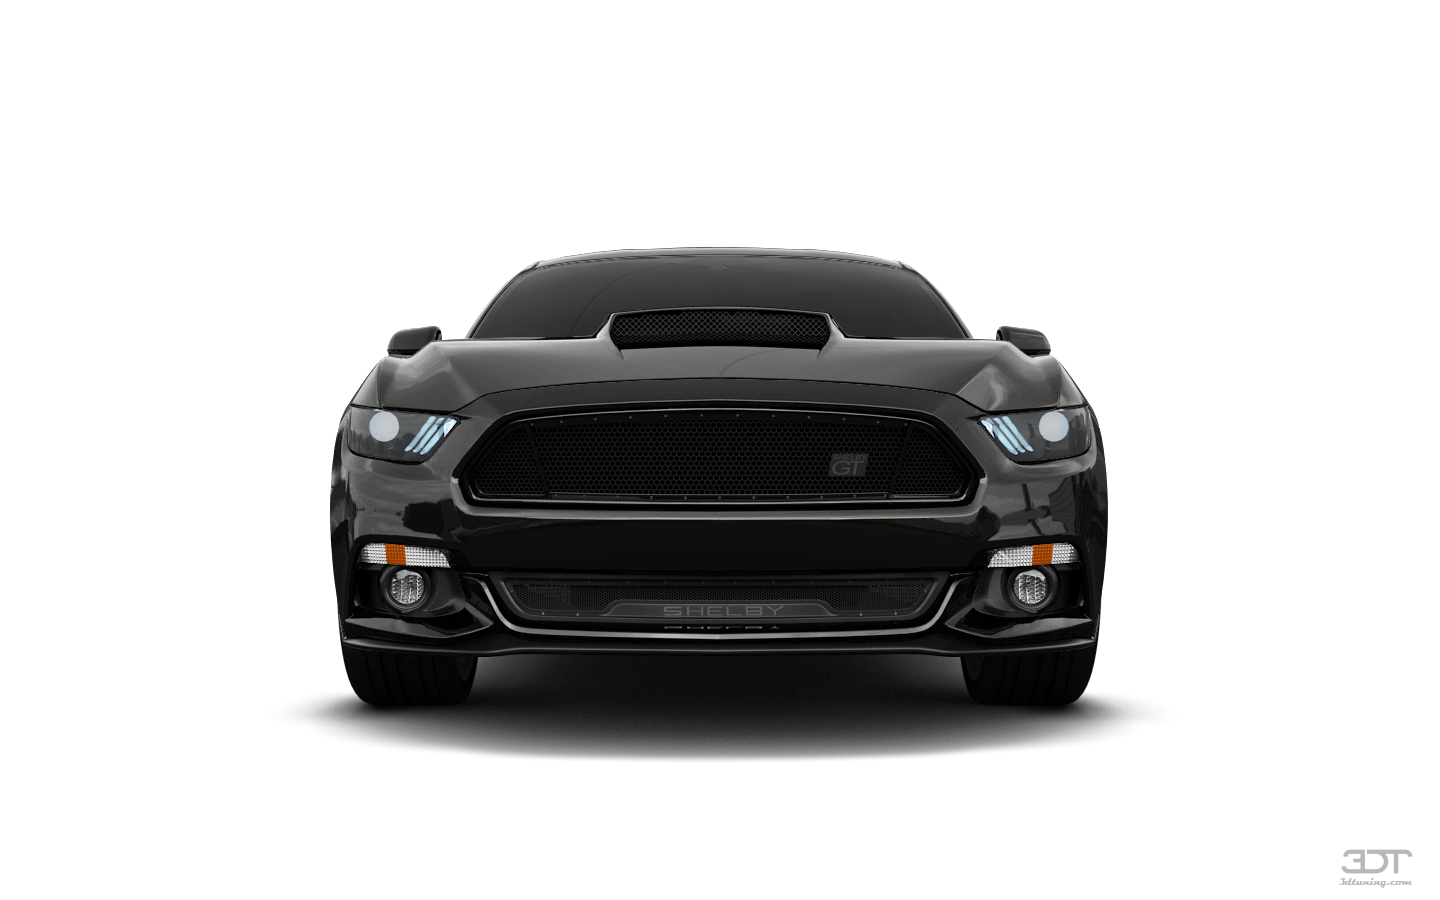 Ford Mustang GT'15